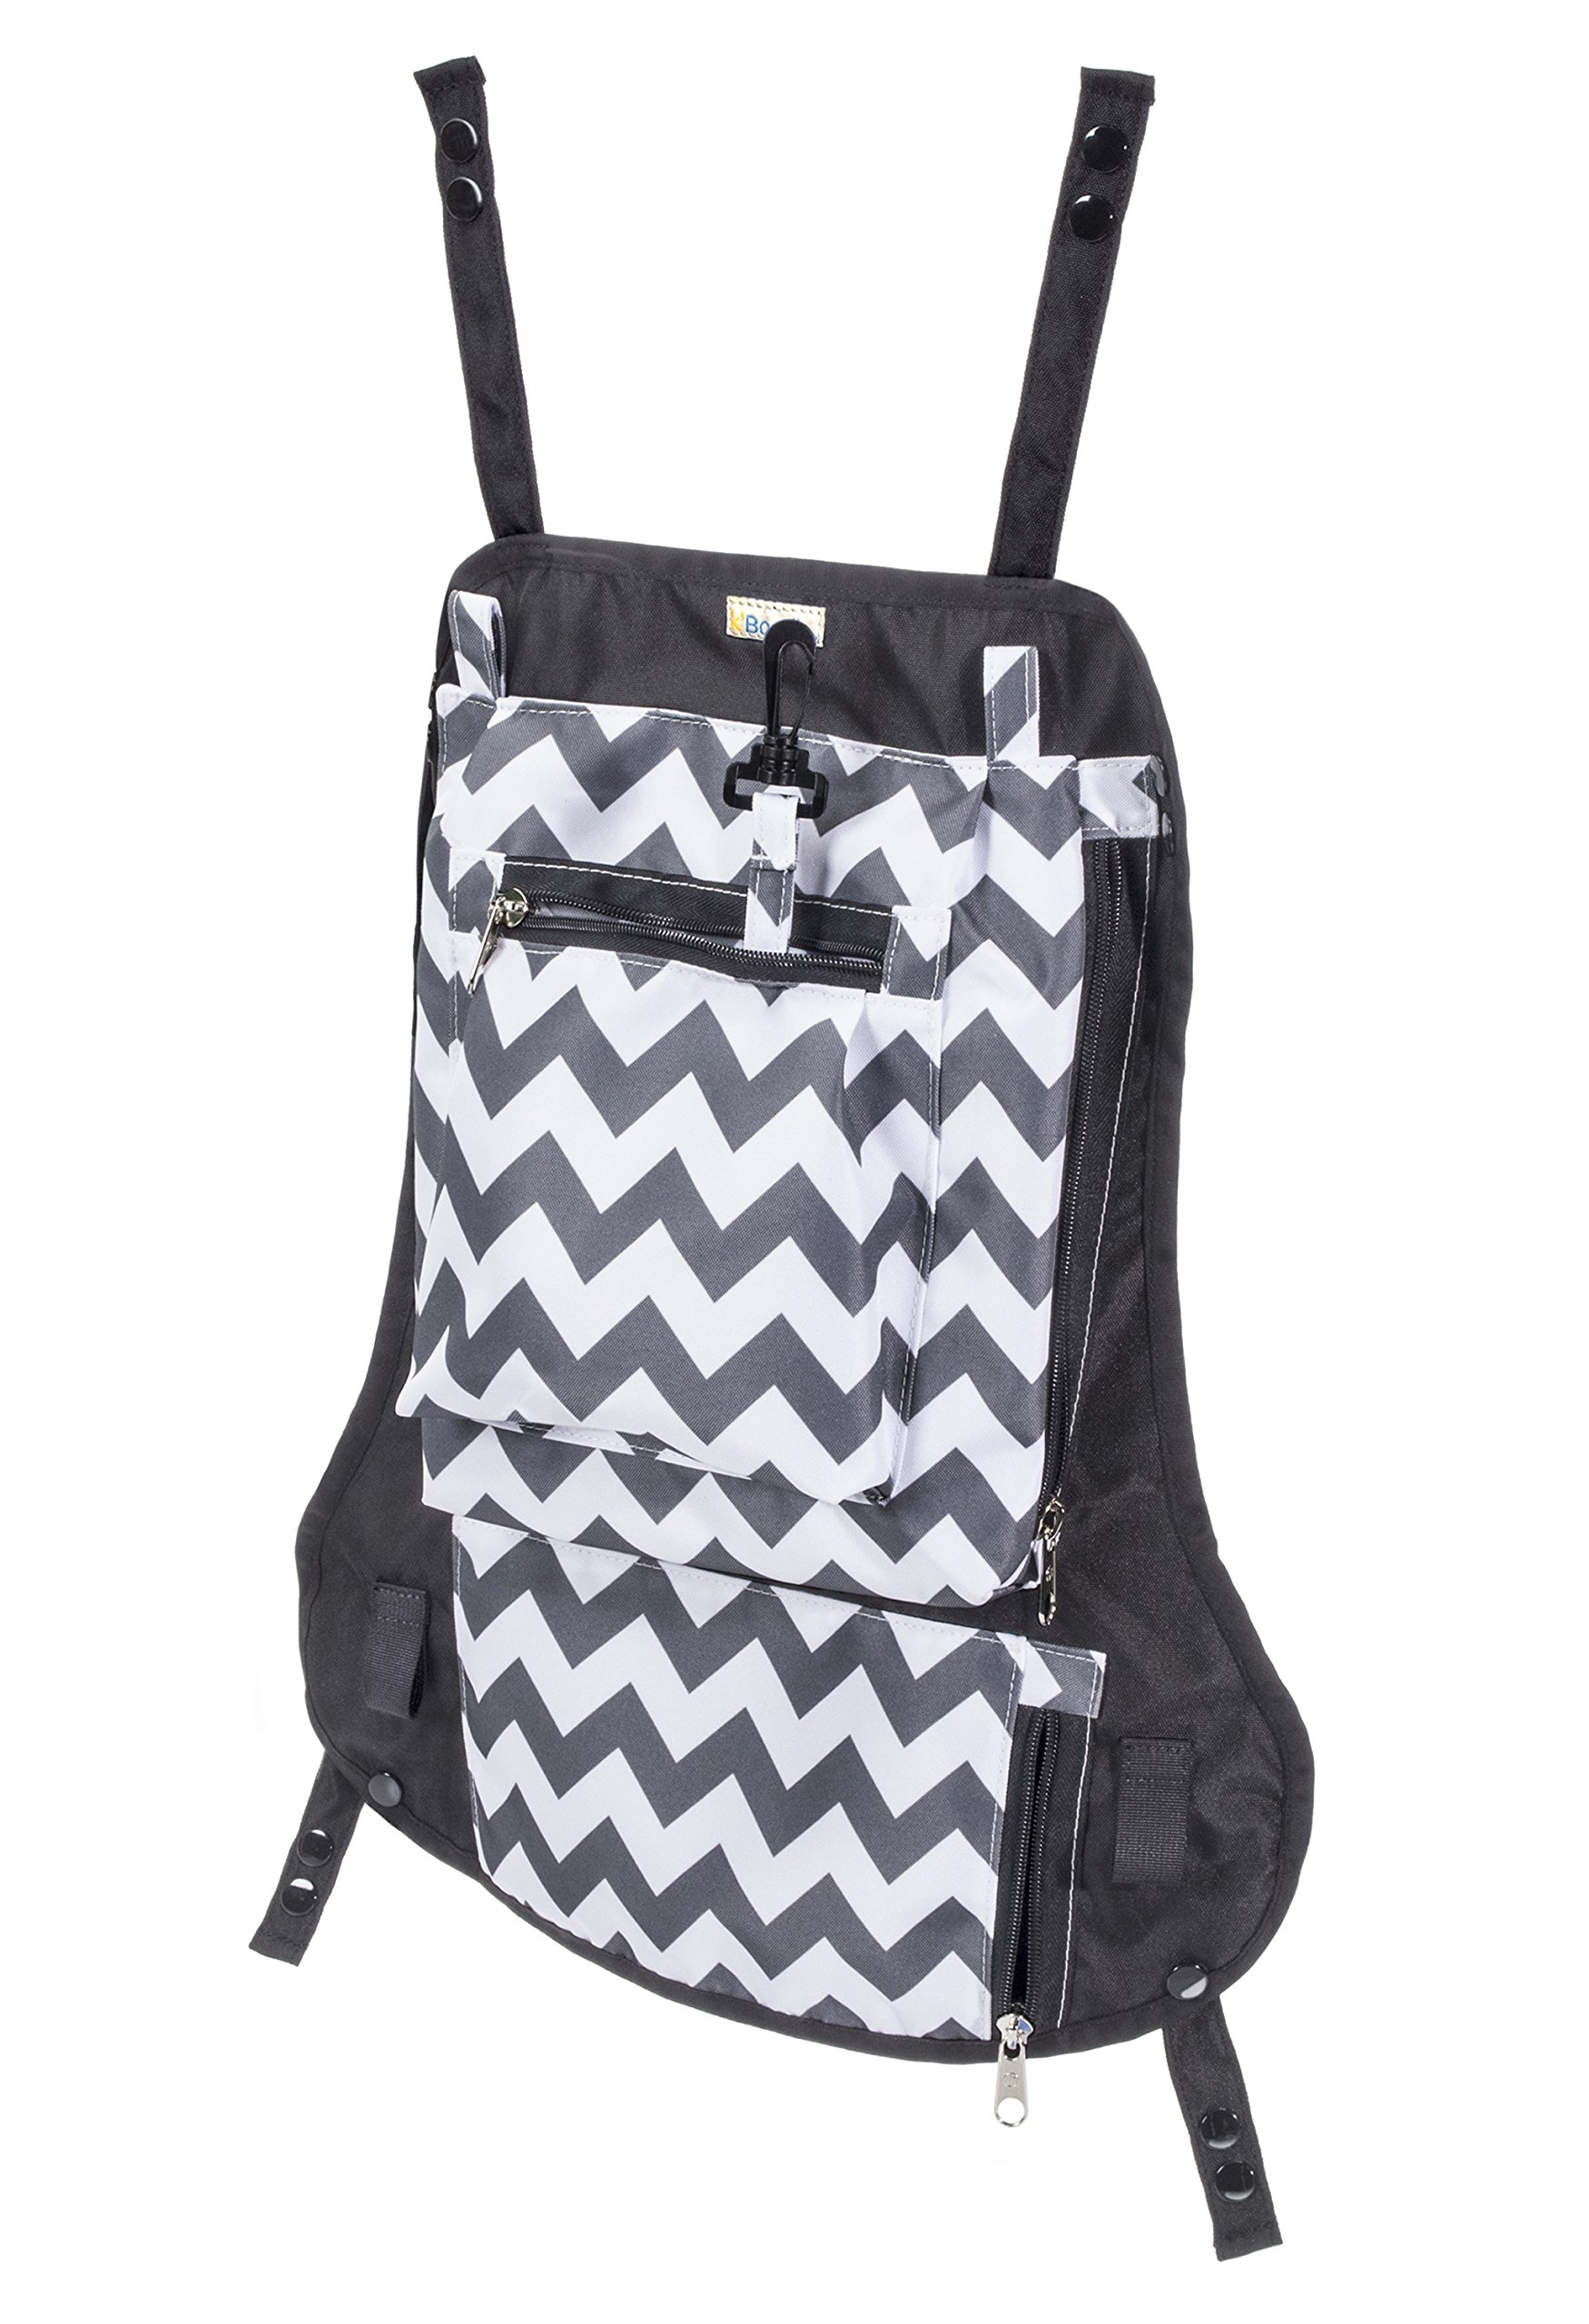 Attachable Diaper Bag: Snaps on baby carriers, and strollers for hands free parenting for active families (Chevron)